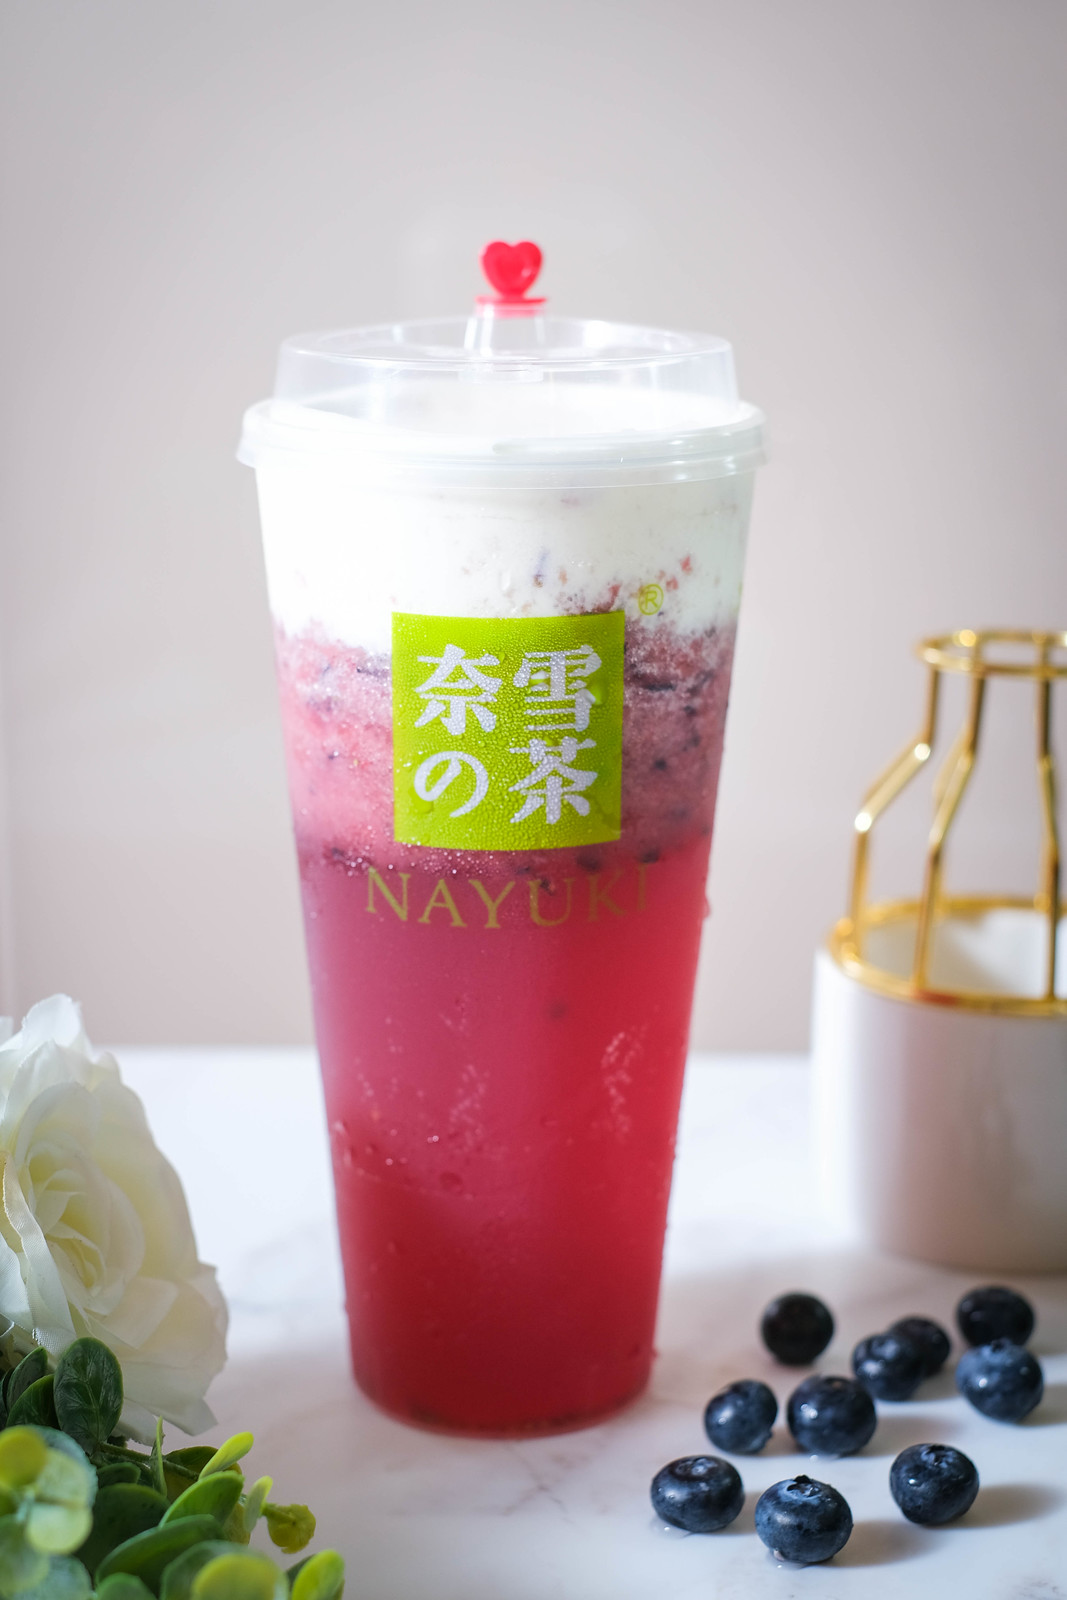 Nayuki Supreme Cheese Mixed Berries Drink